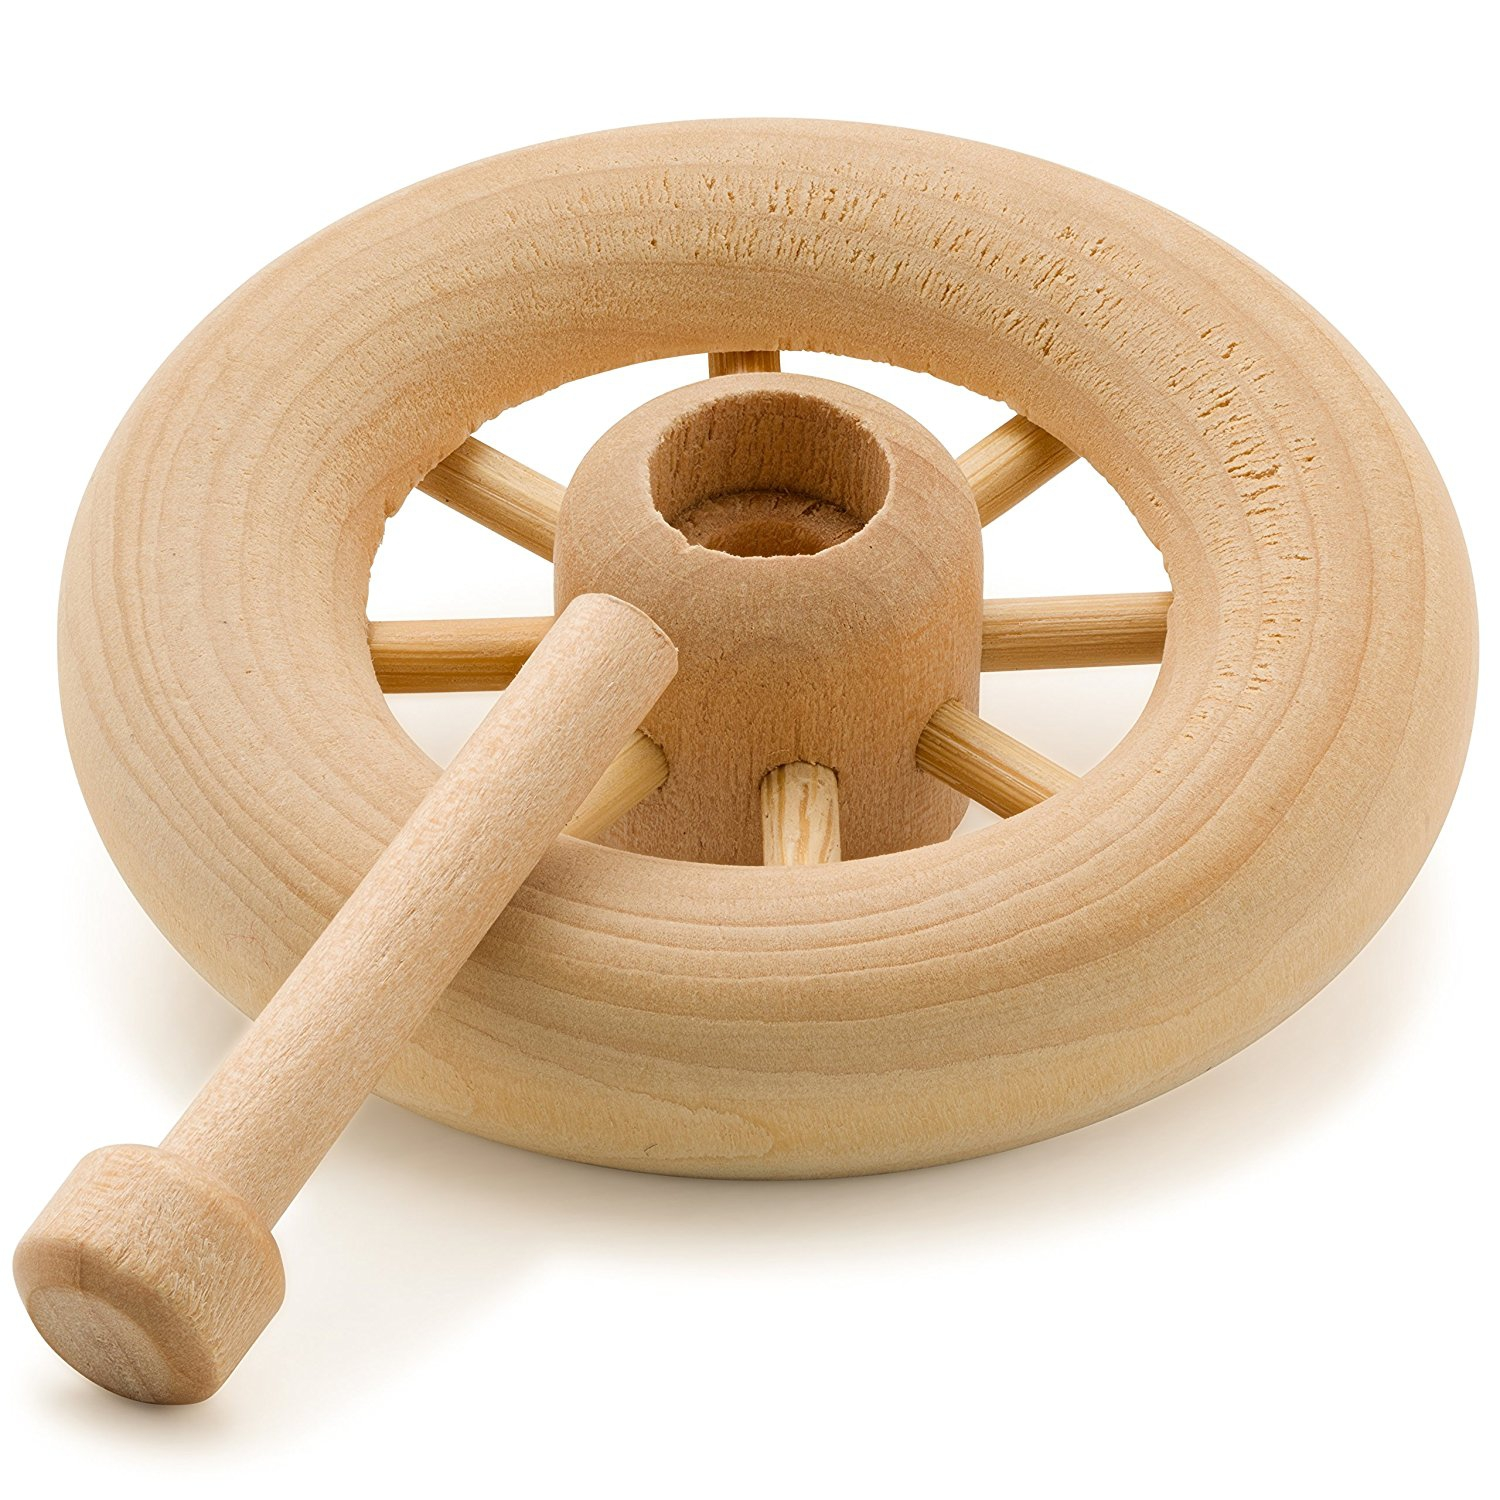 Wooden Spoked Toy Wheels 1-3/4 inch Includes Axles Pegs -...